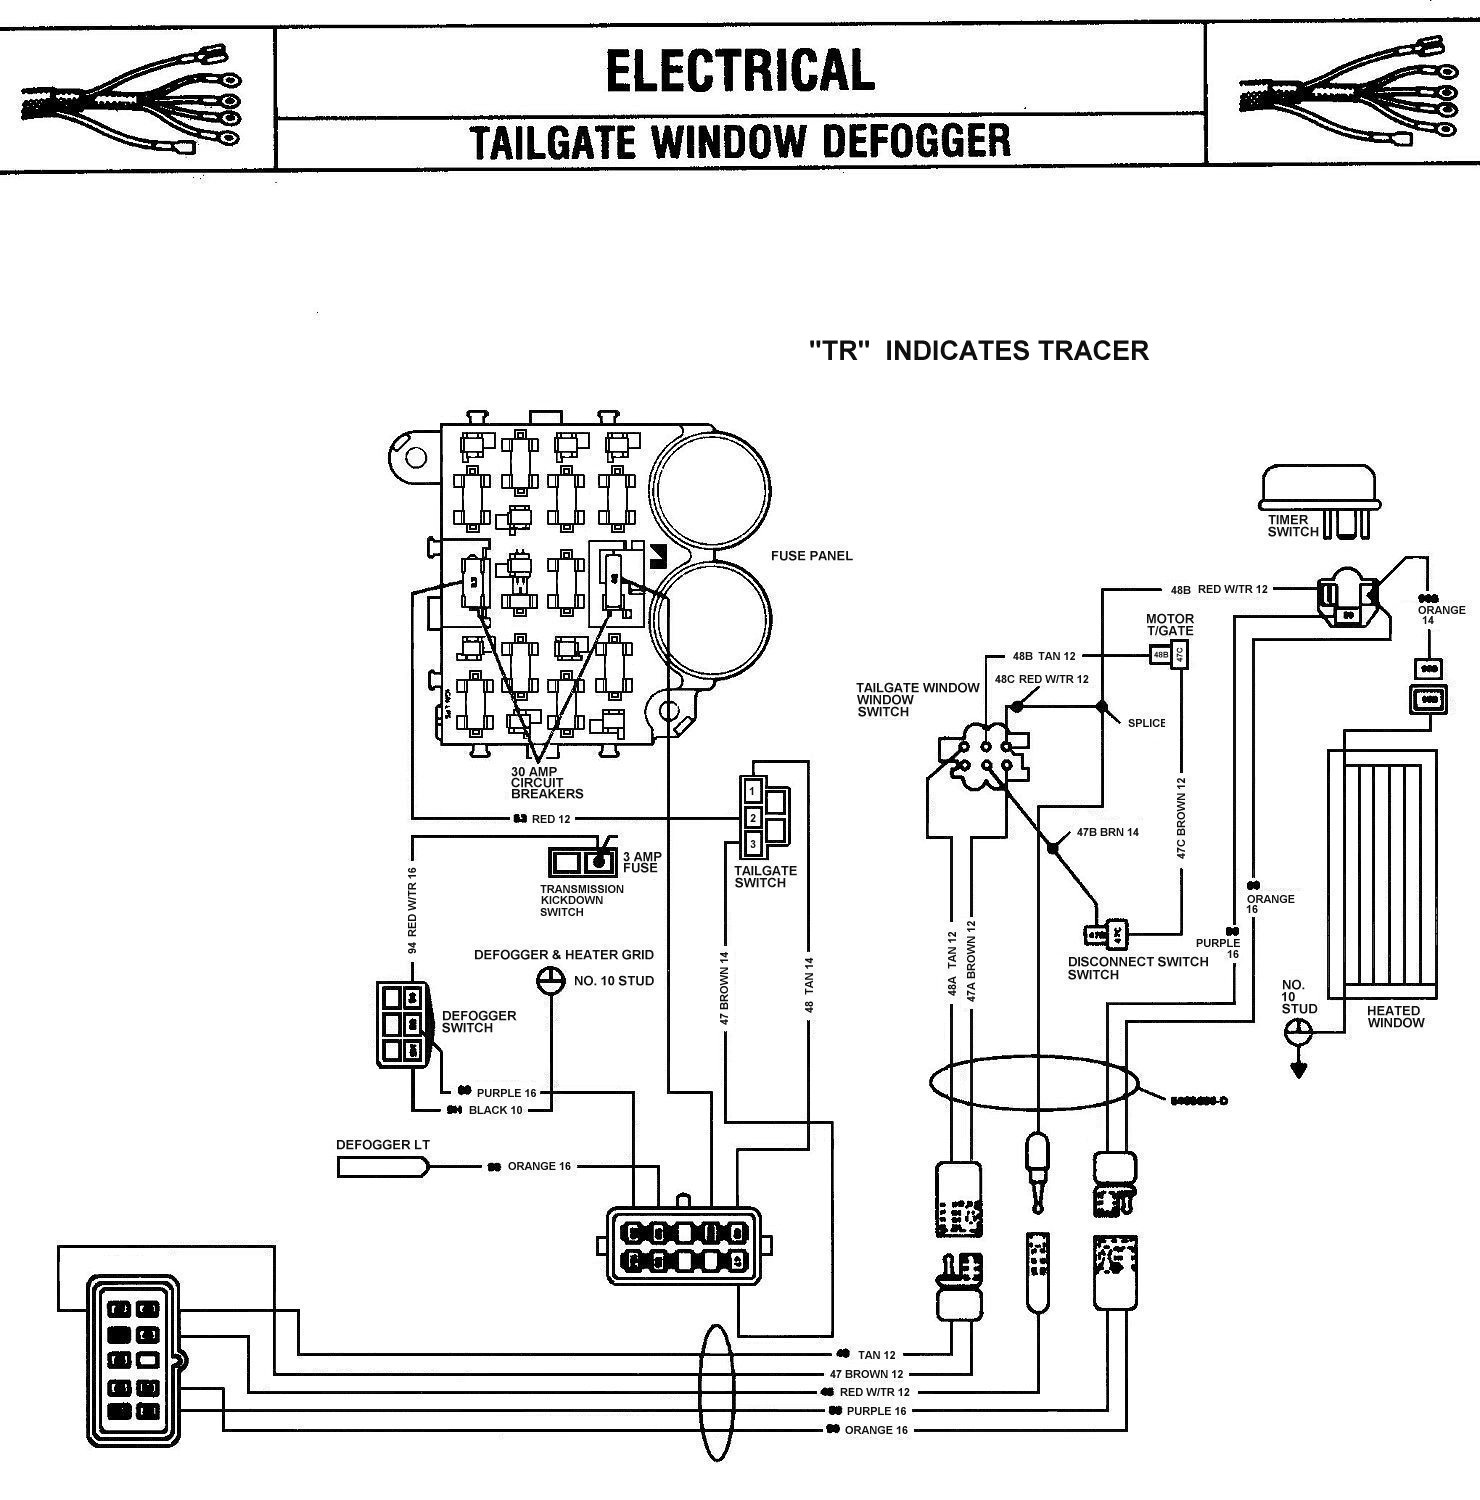 hight resolution of 83 jeep wagoneer wiring wiring diagram expert1983 jeep cherokee fuse box location 18